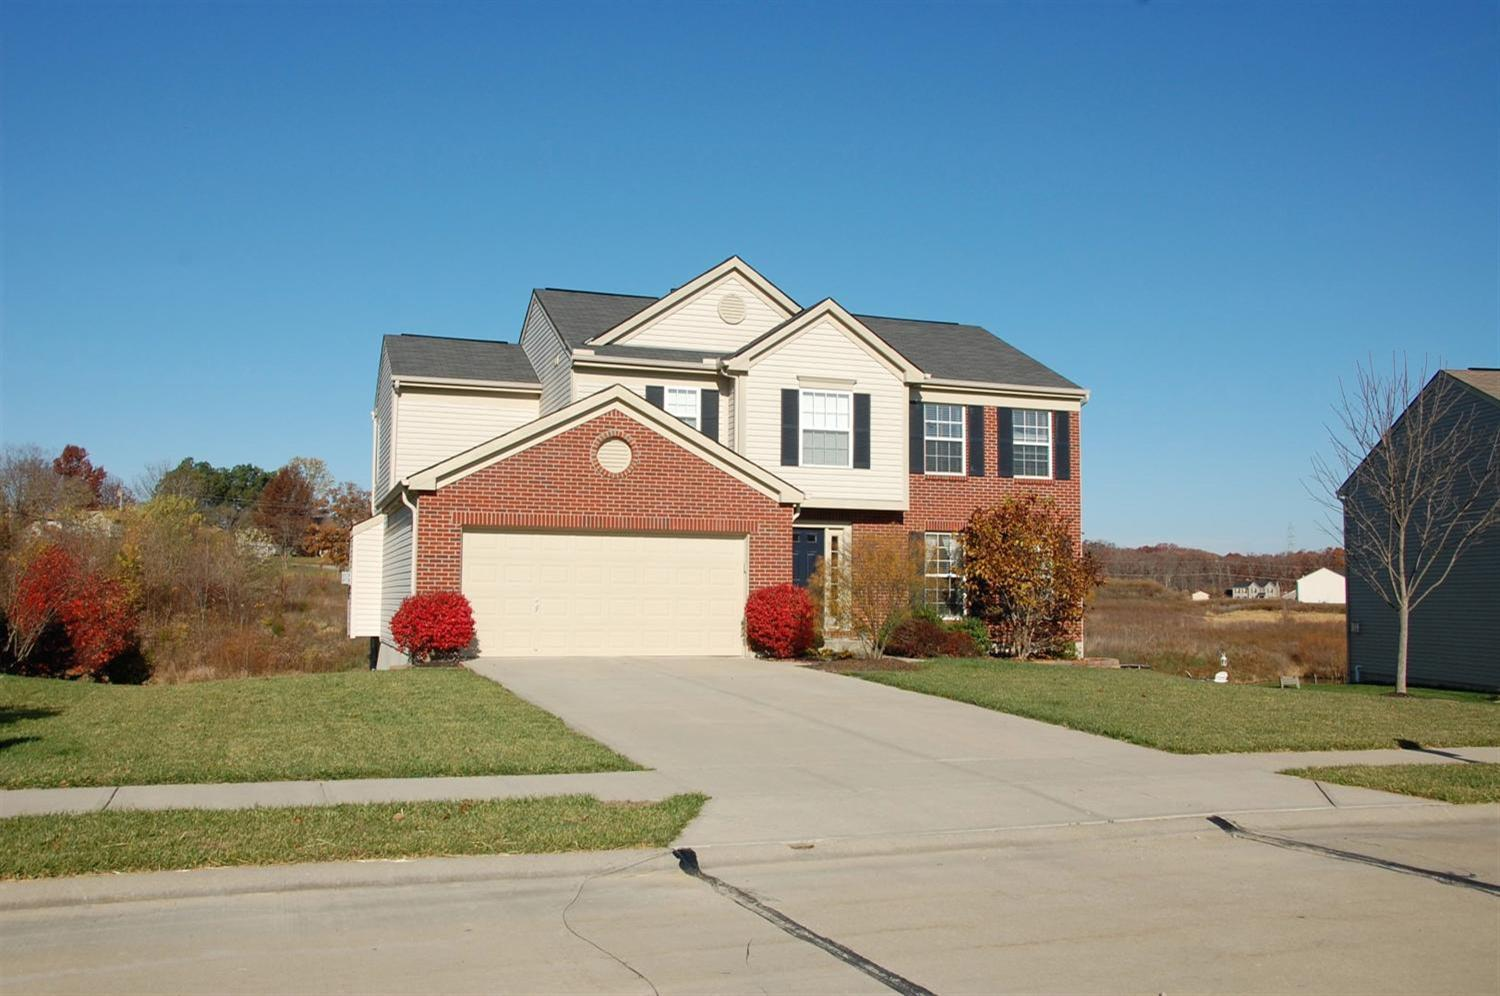 Photo 1 for 716 Brant Ct Alexandria, KY 41001